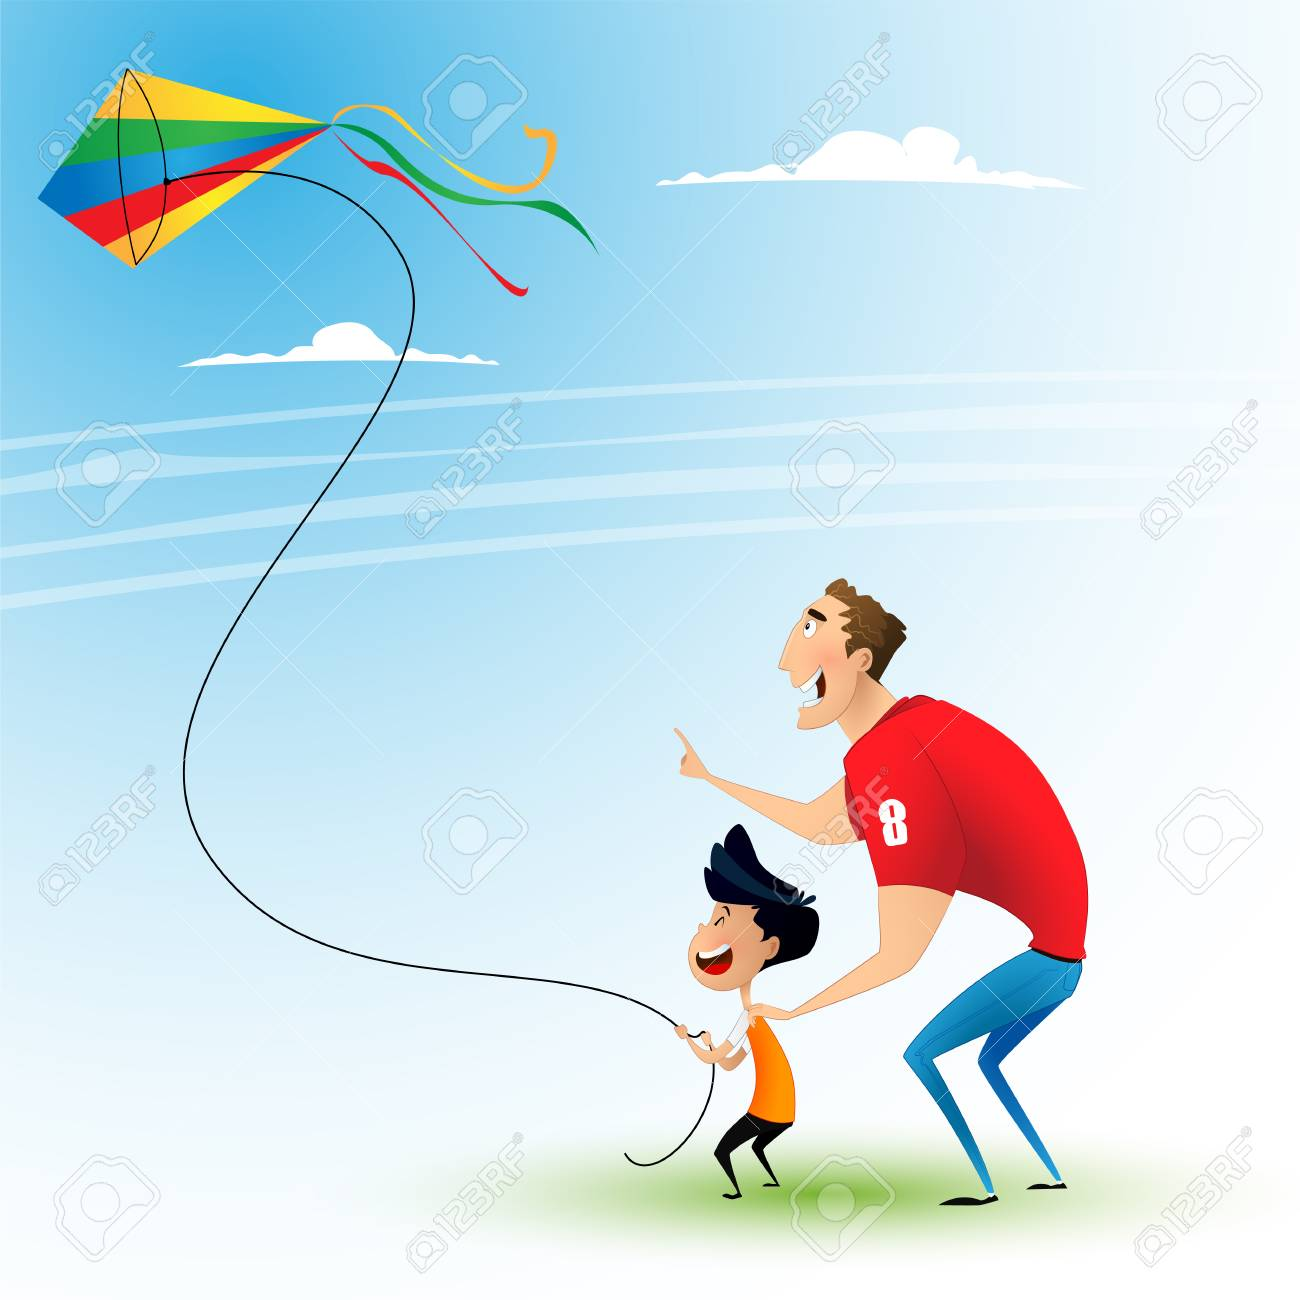 Image result for father and son kite flying cartoon image